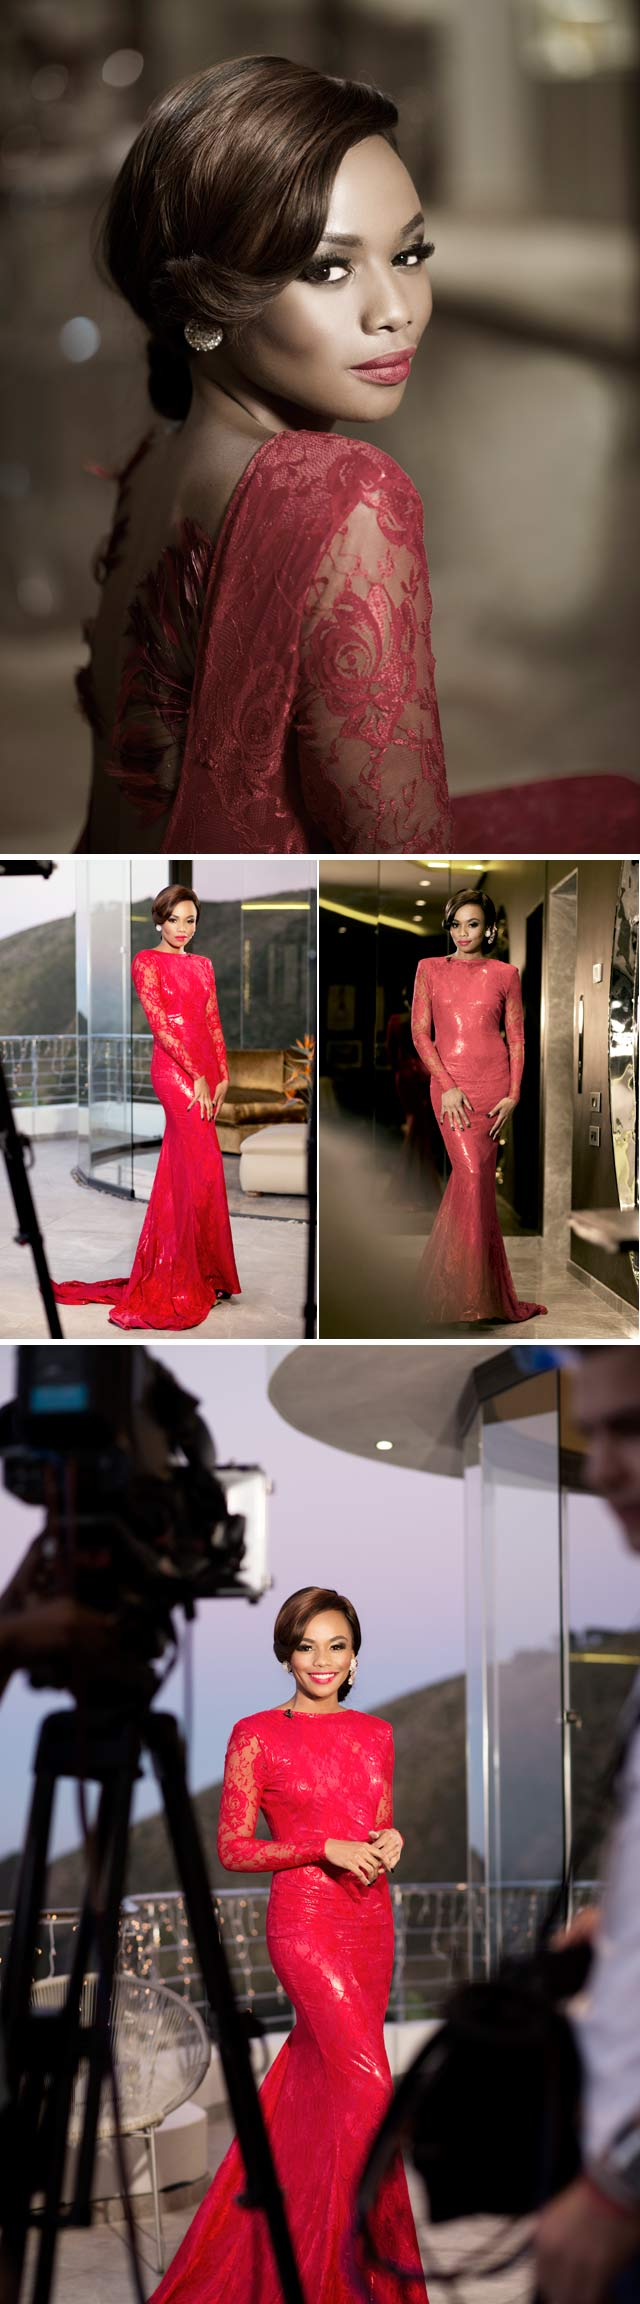 Bonang Matheba wearing red dress by gert johan coetzee on Top Billing